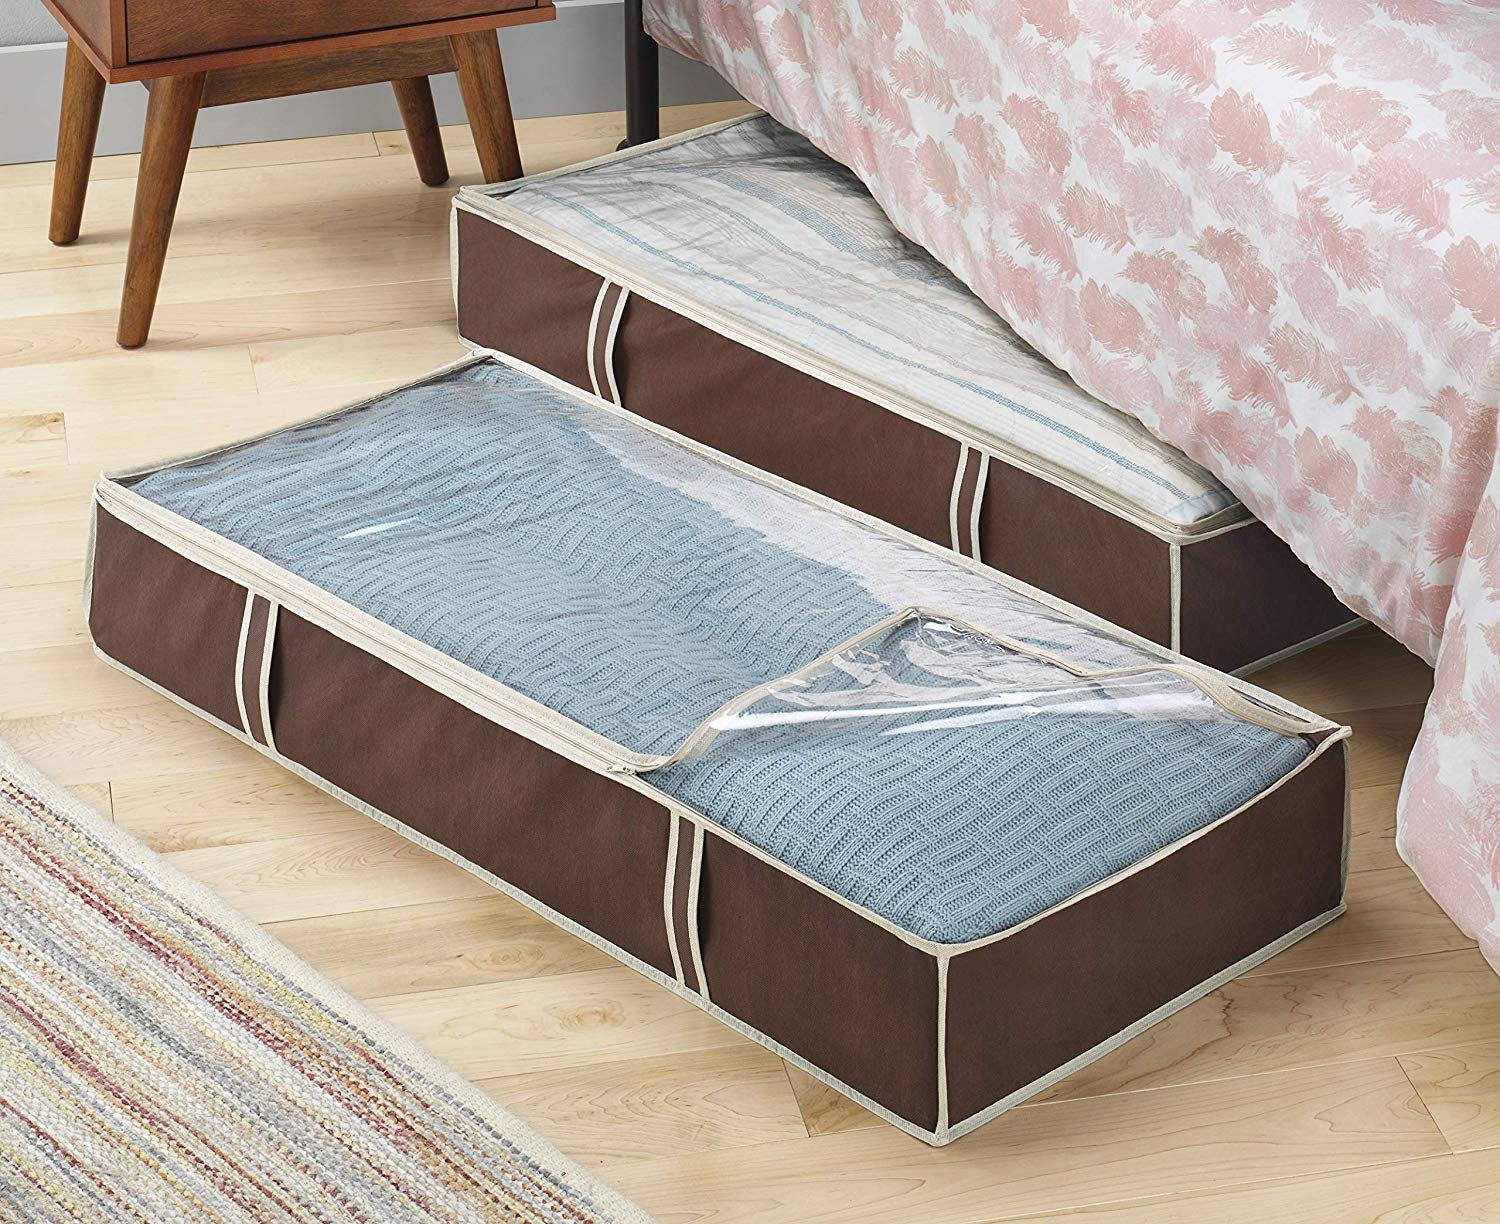 Under Bed Storage Frame The 4 Best Under Bed Storage Organizers